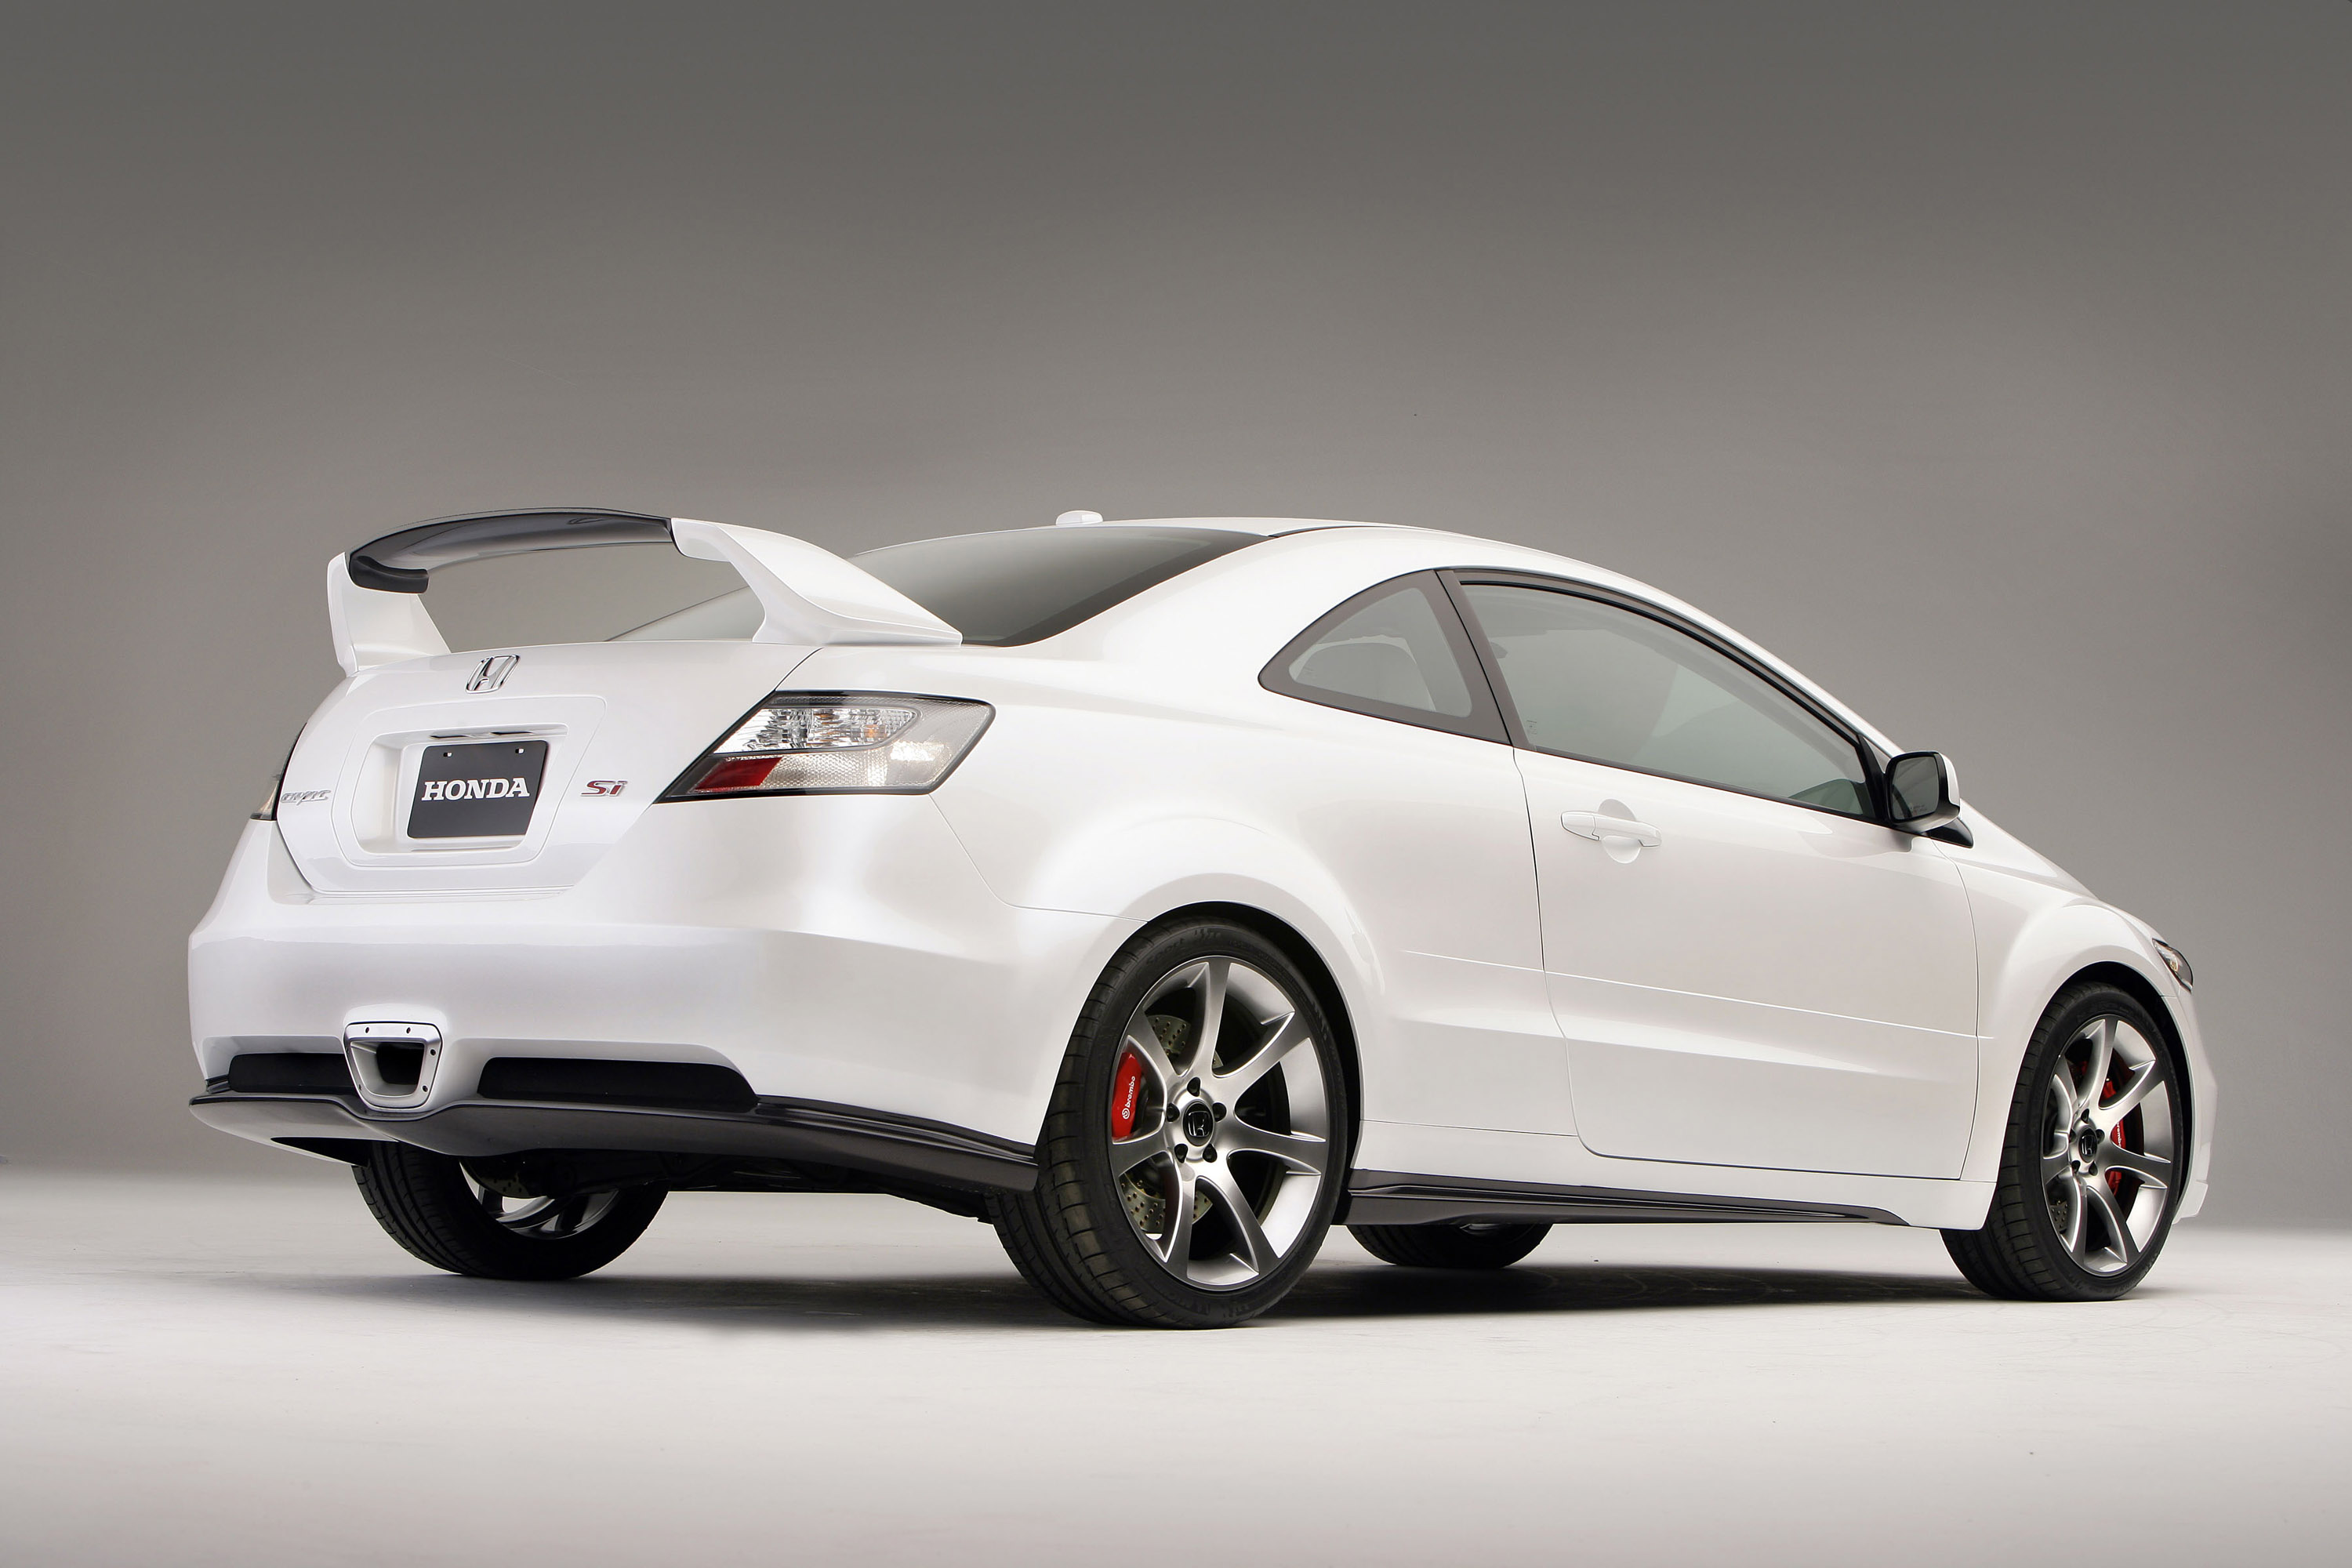 2005 Honda Civic Si Sport Concept Thumbnail Photo 72427